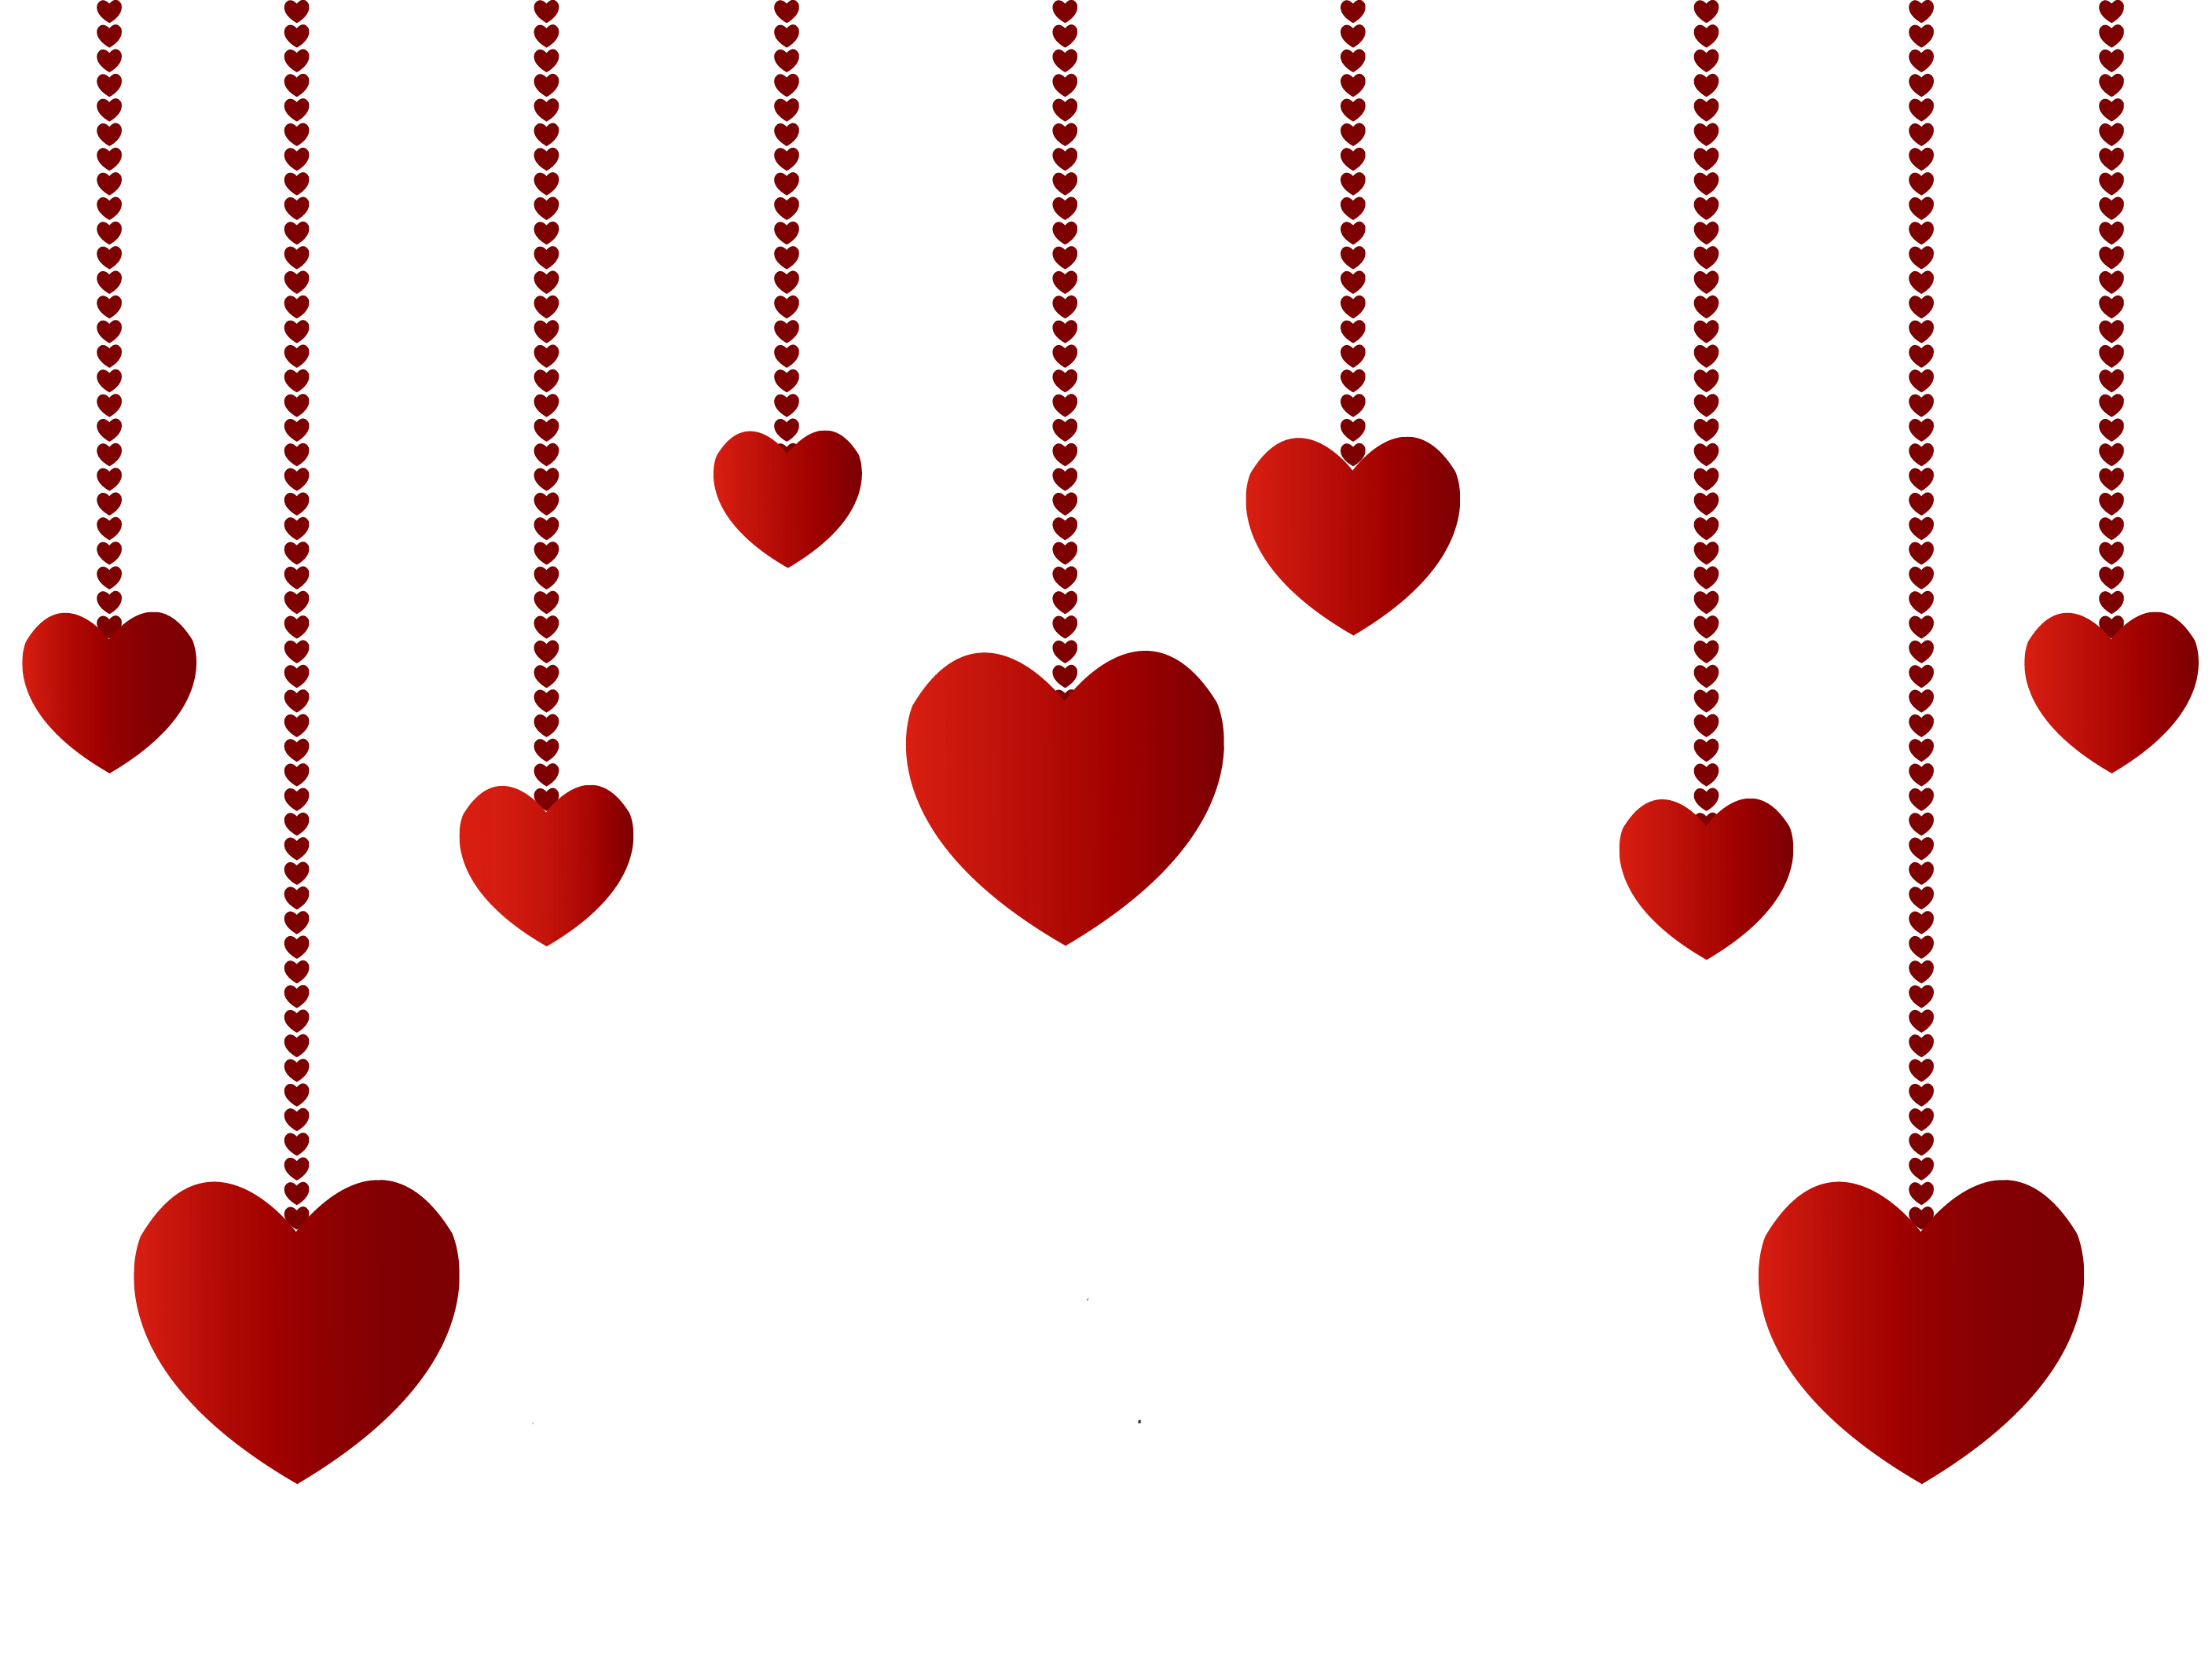 Valentine decorations png. Hanging hearts decoration picture